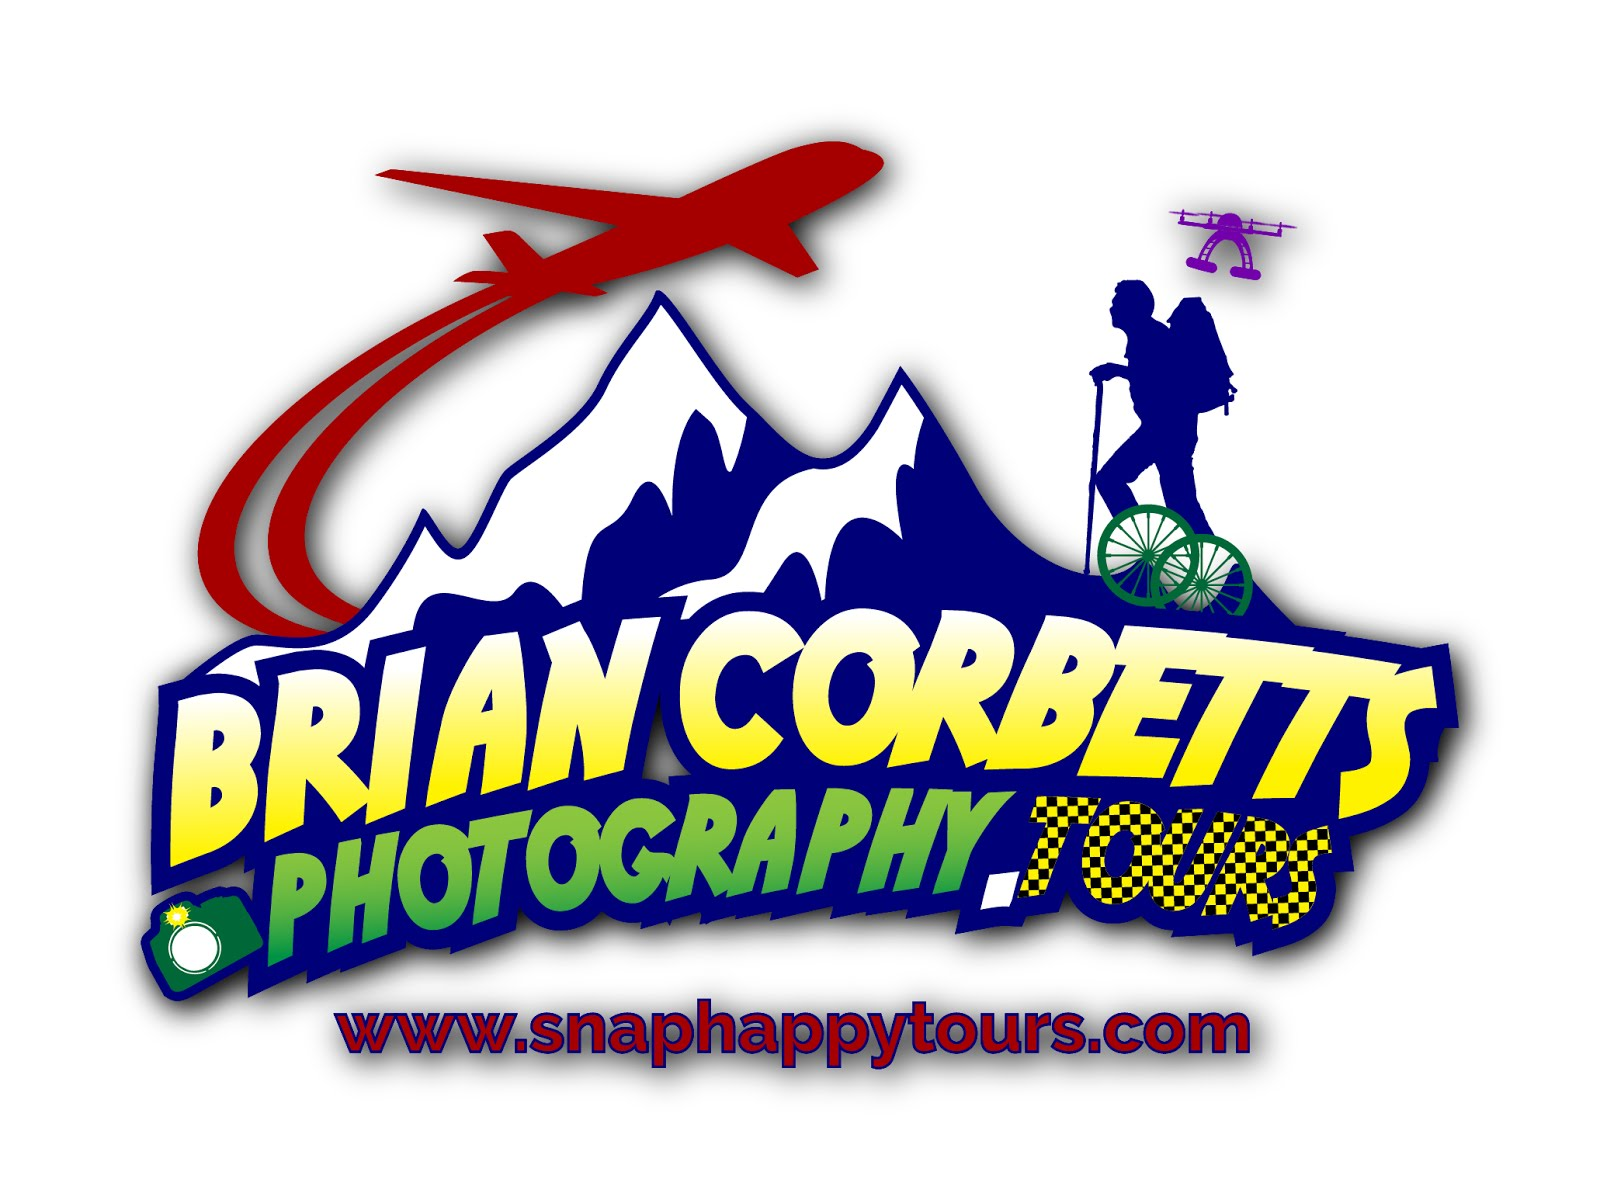 www.briancorbettsphotography.tours